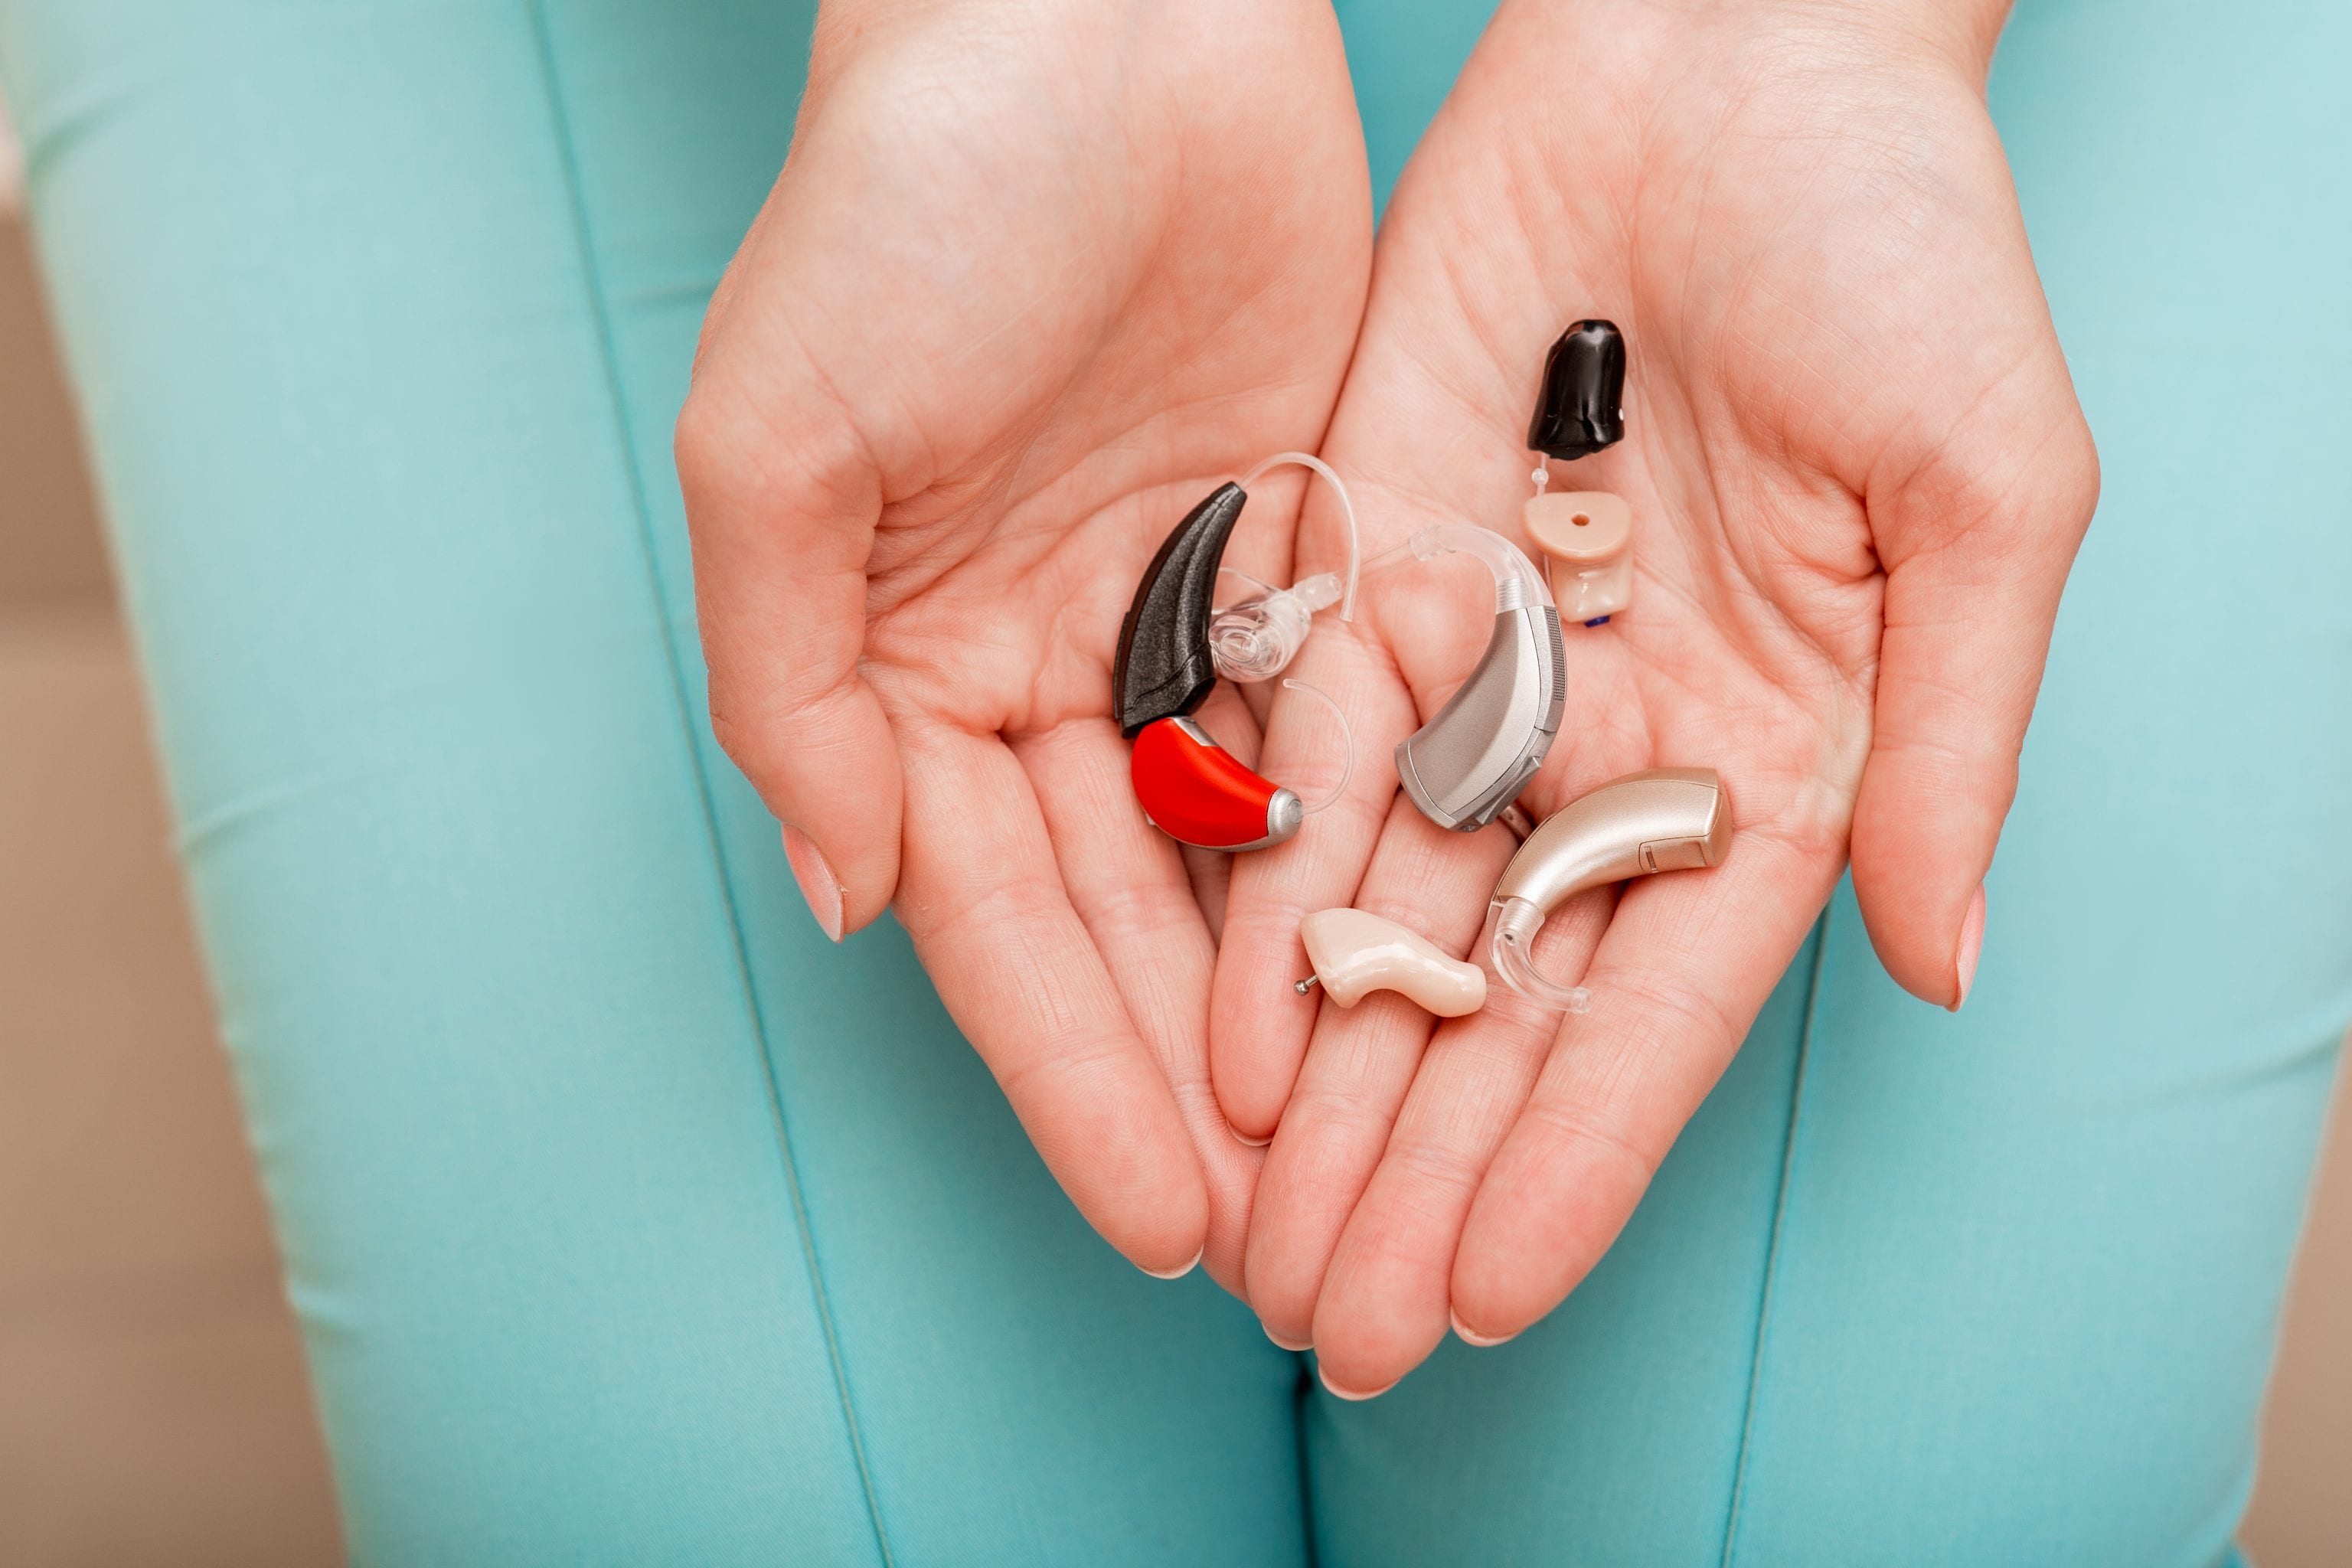 hands holding a variety of different hearing aids in lap